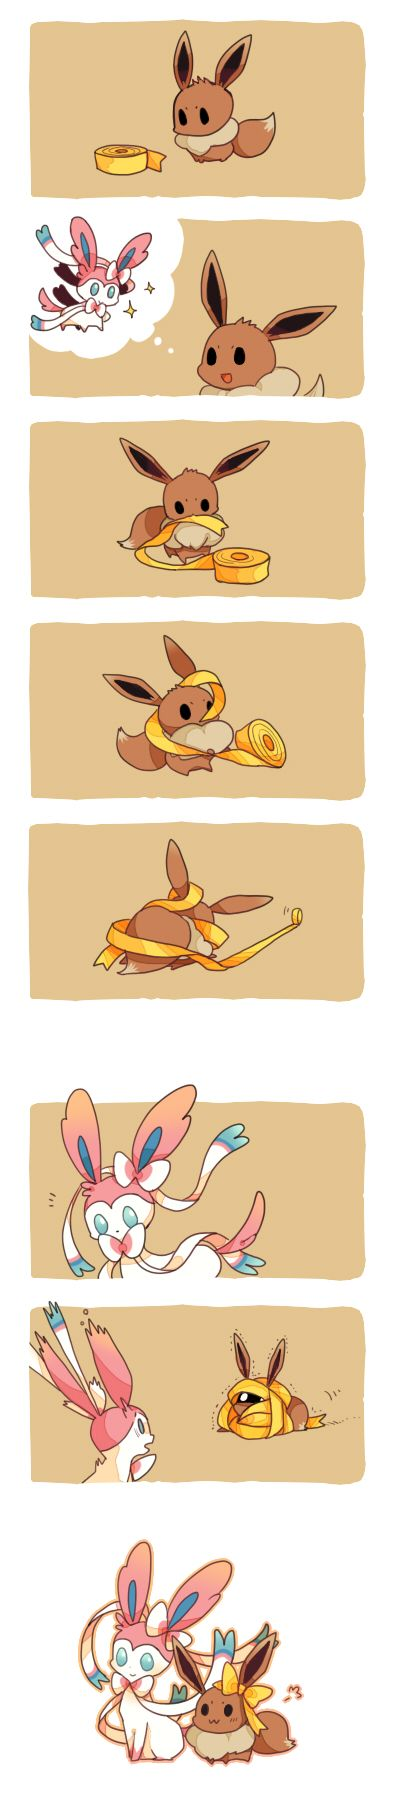 Ohh Eevee~ You want too be so many things!